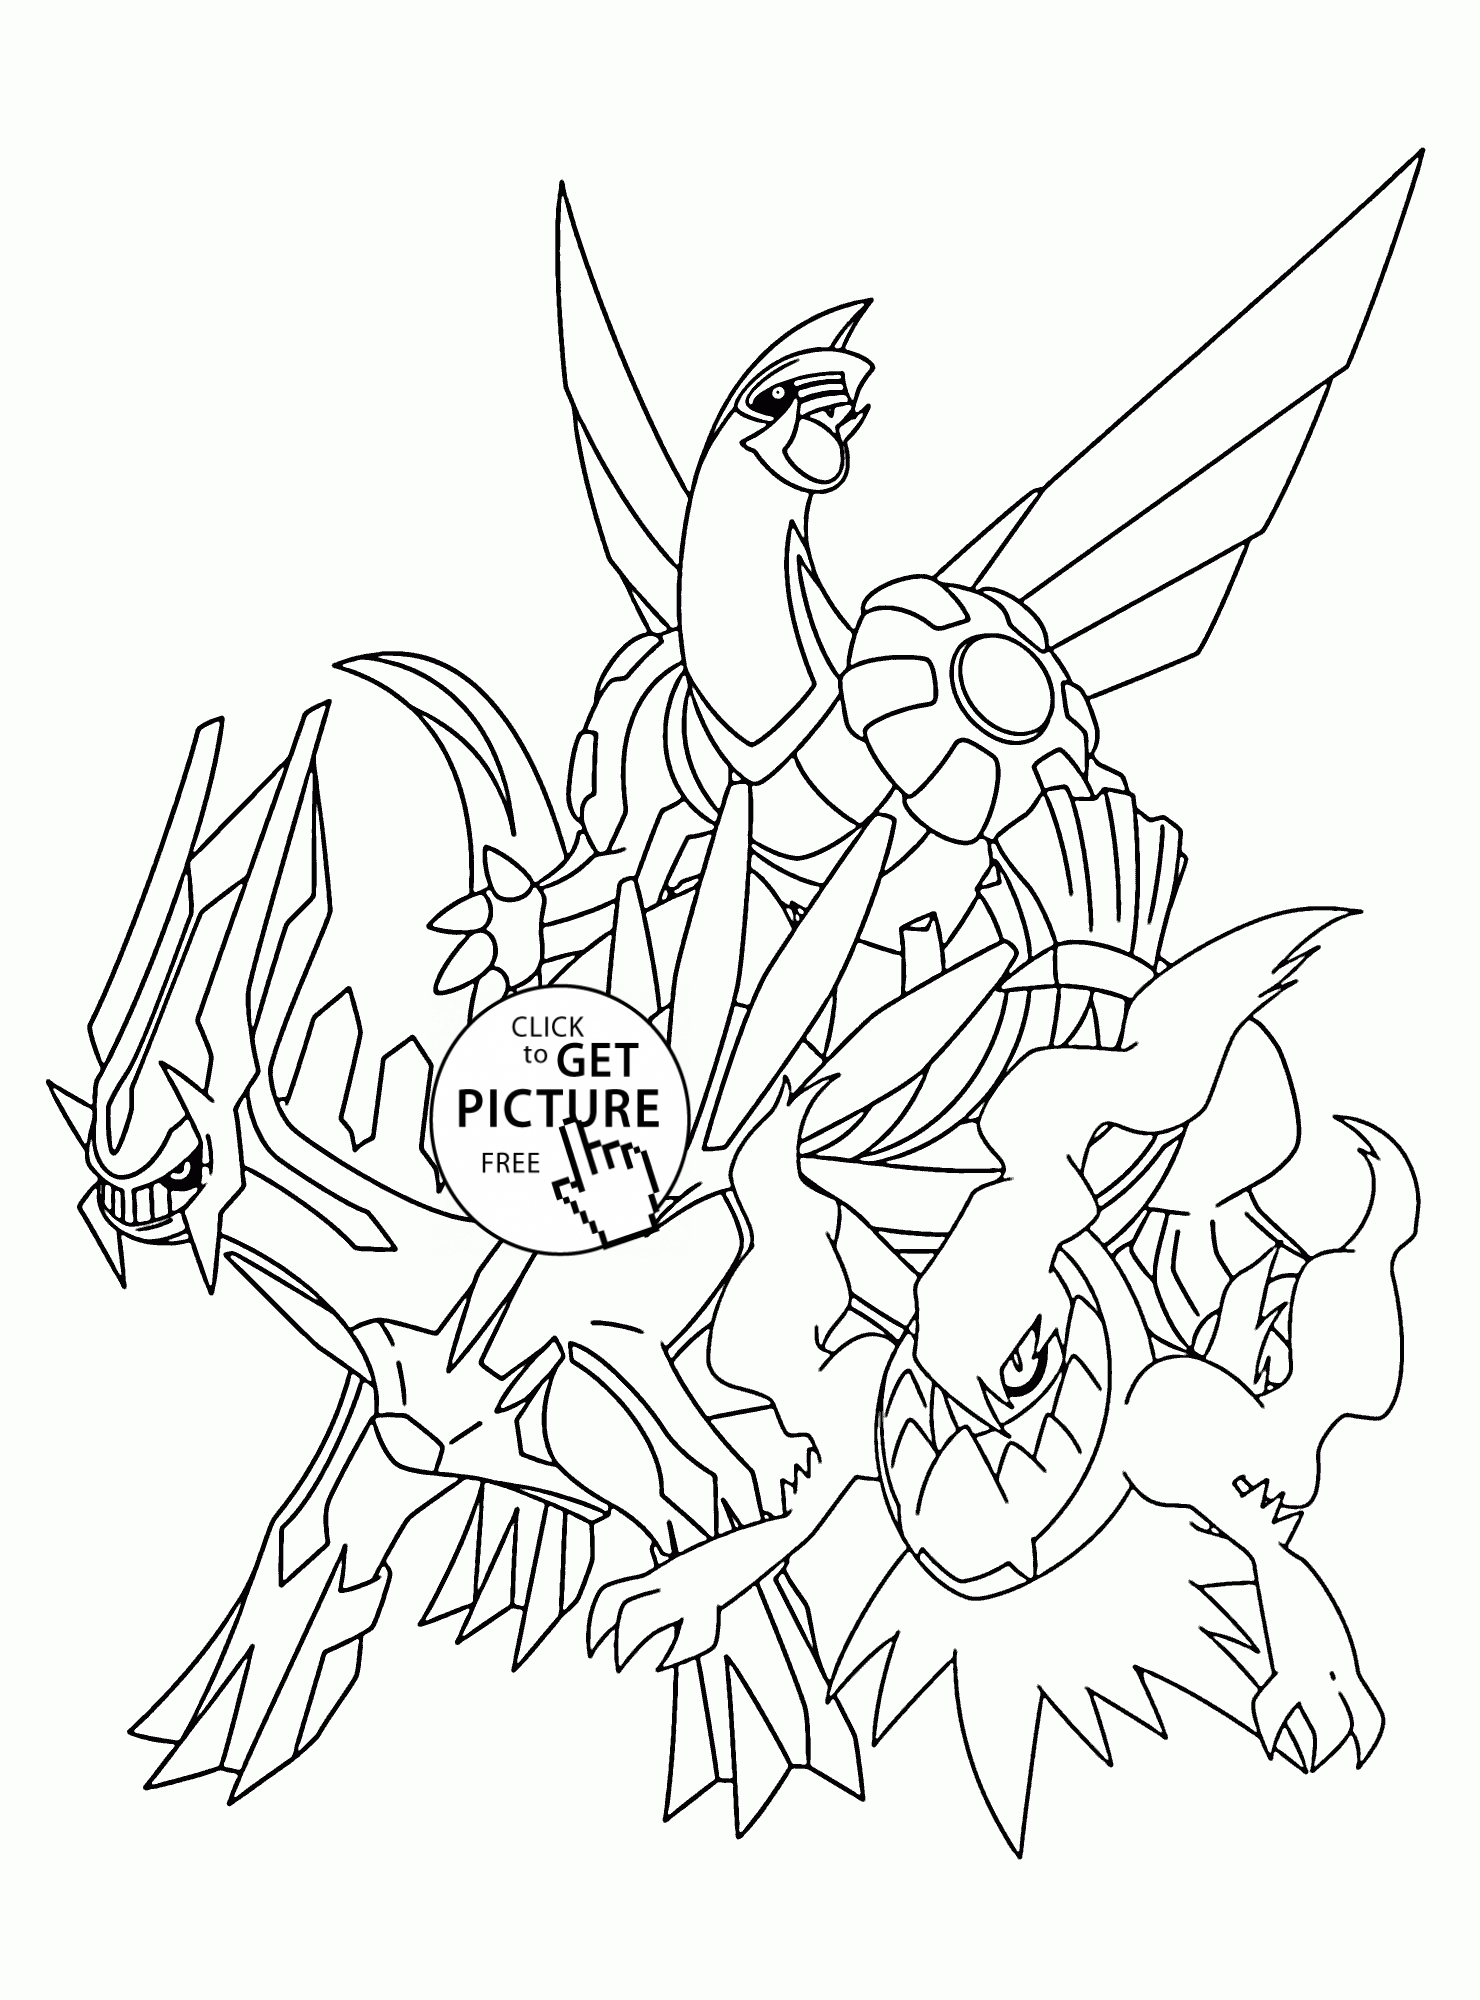 free online coloring pages pokemon black white pokemon characters black and white coloring pages coloring pokemon black free white online pages